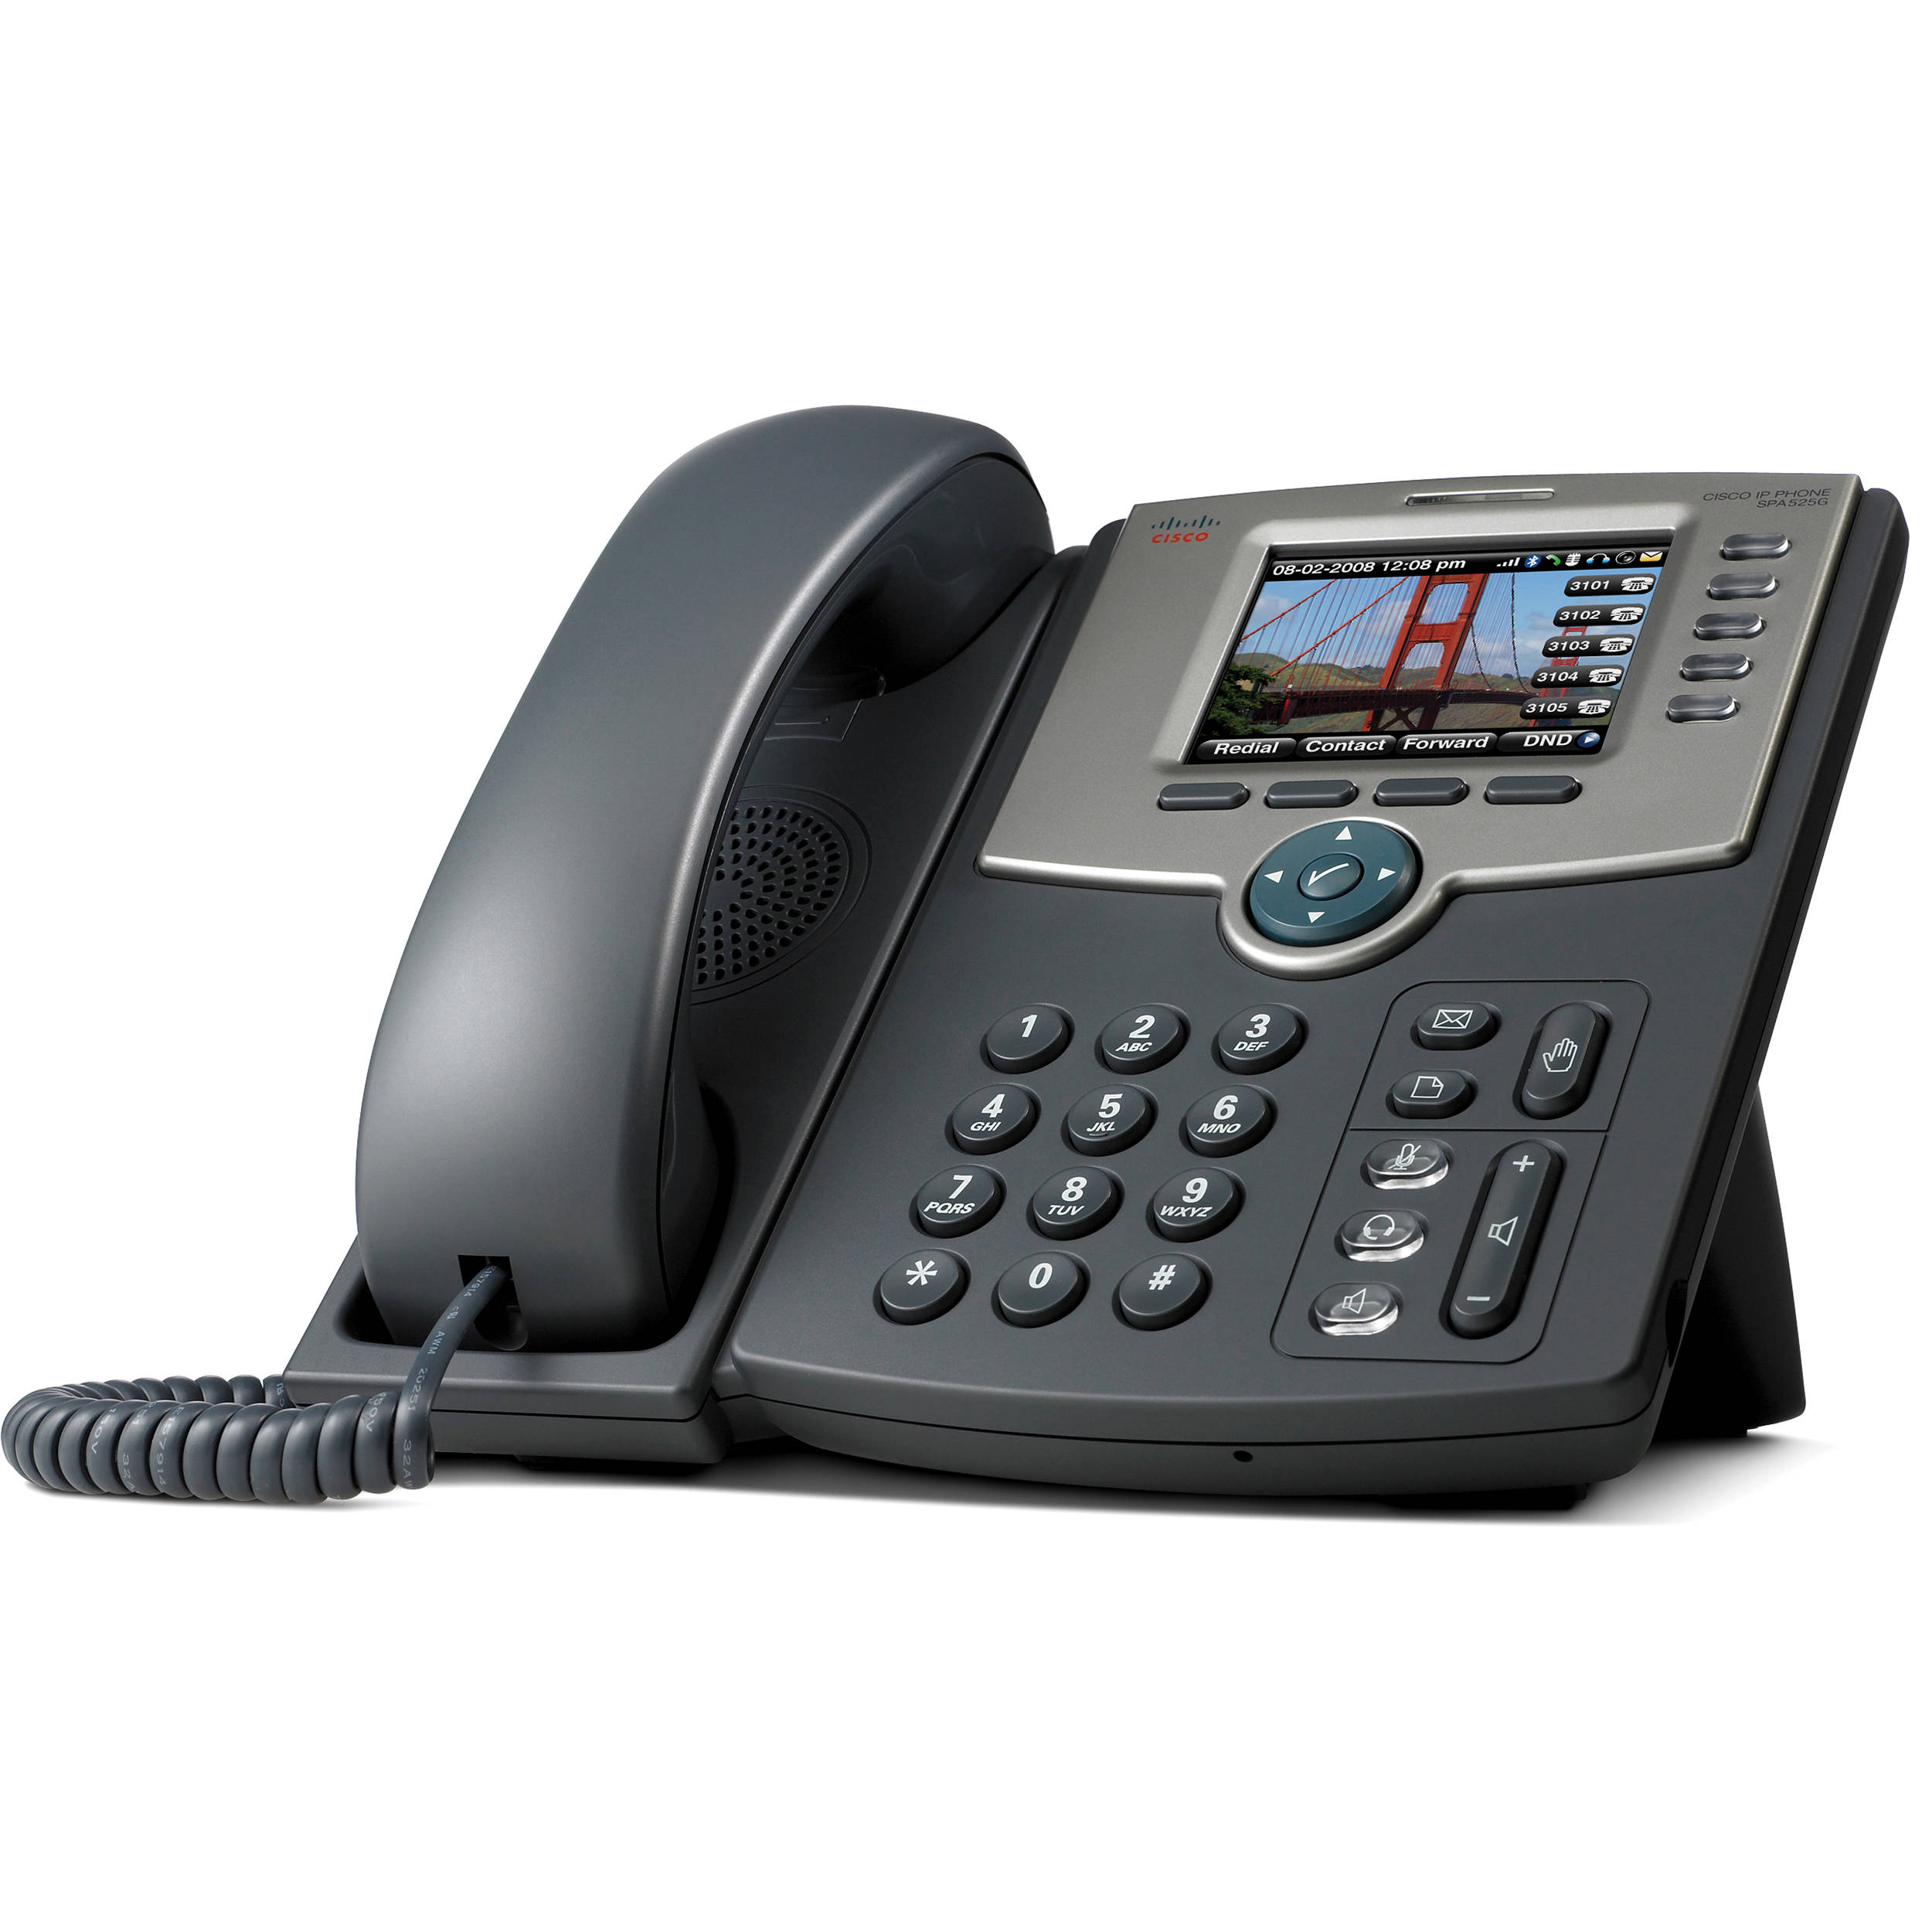 Cisco SPA525G2 5-Line IP Phone with Color Display SPA525G2 B&H